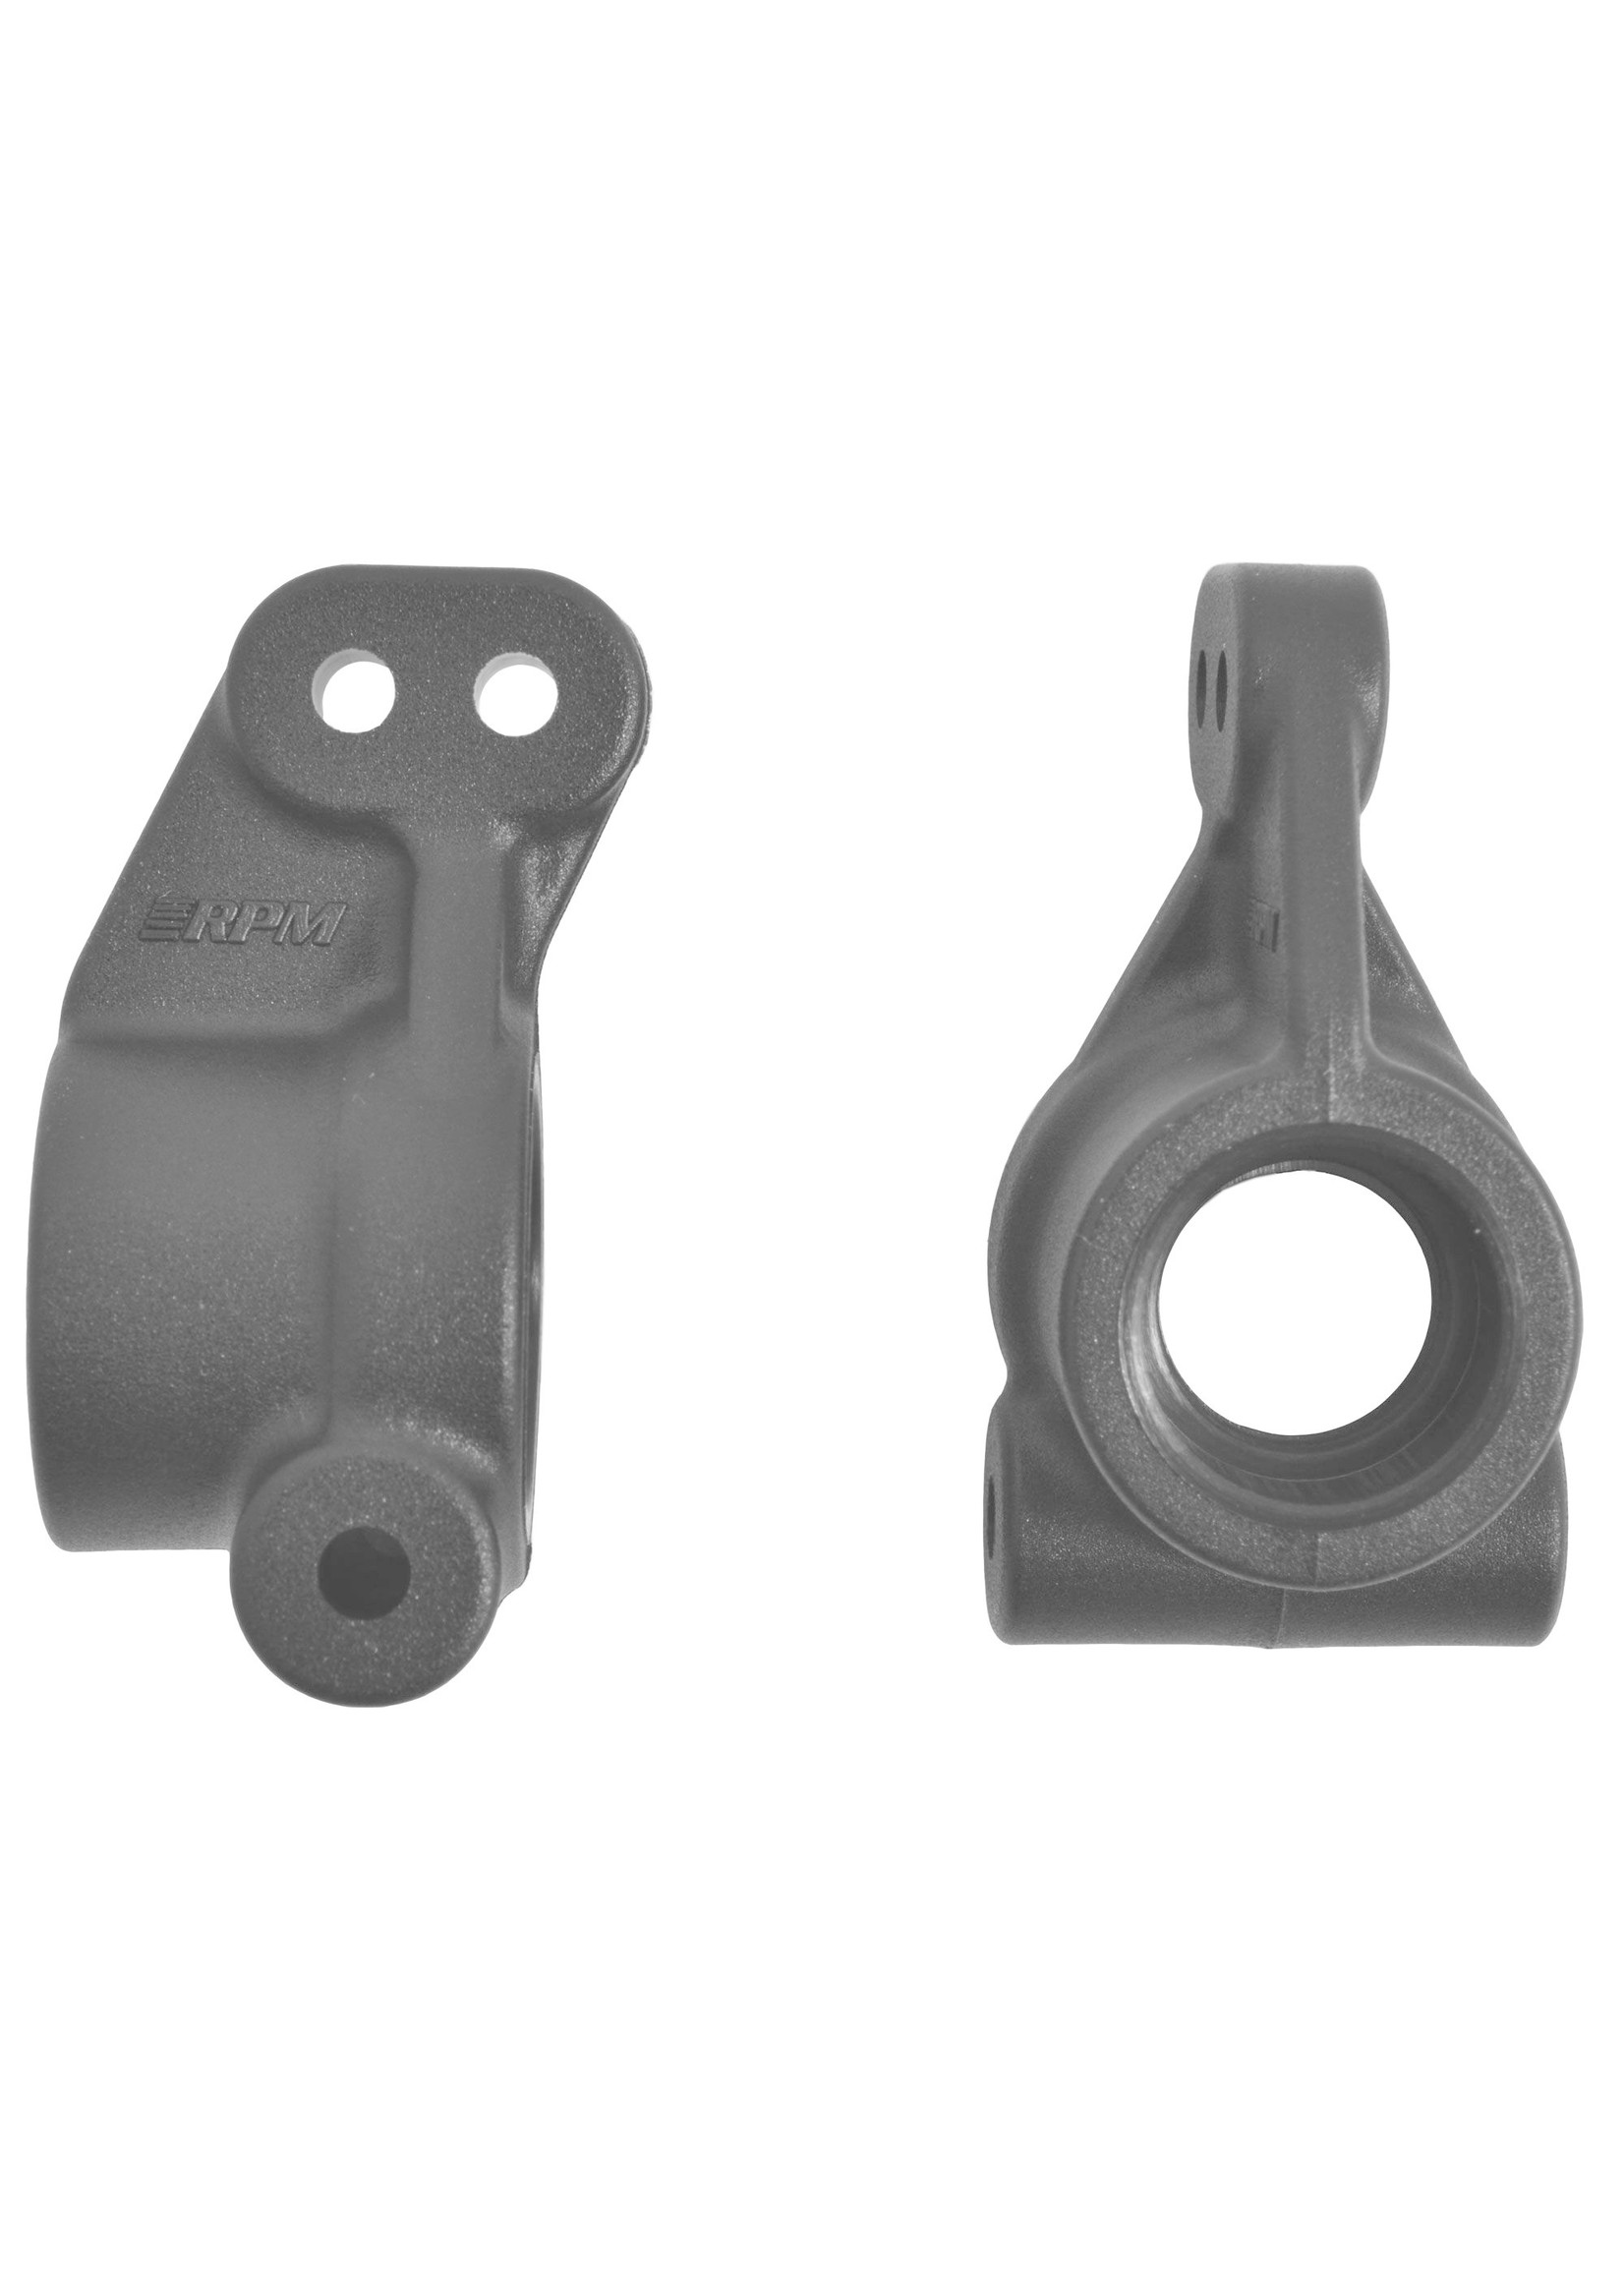 RPM RPM73572 RPM Rear Axle Carriers, for ECX Boost, Circuit 2wd, Ruckus 2wd & Torment 2wd